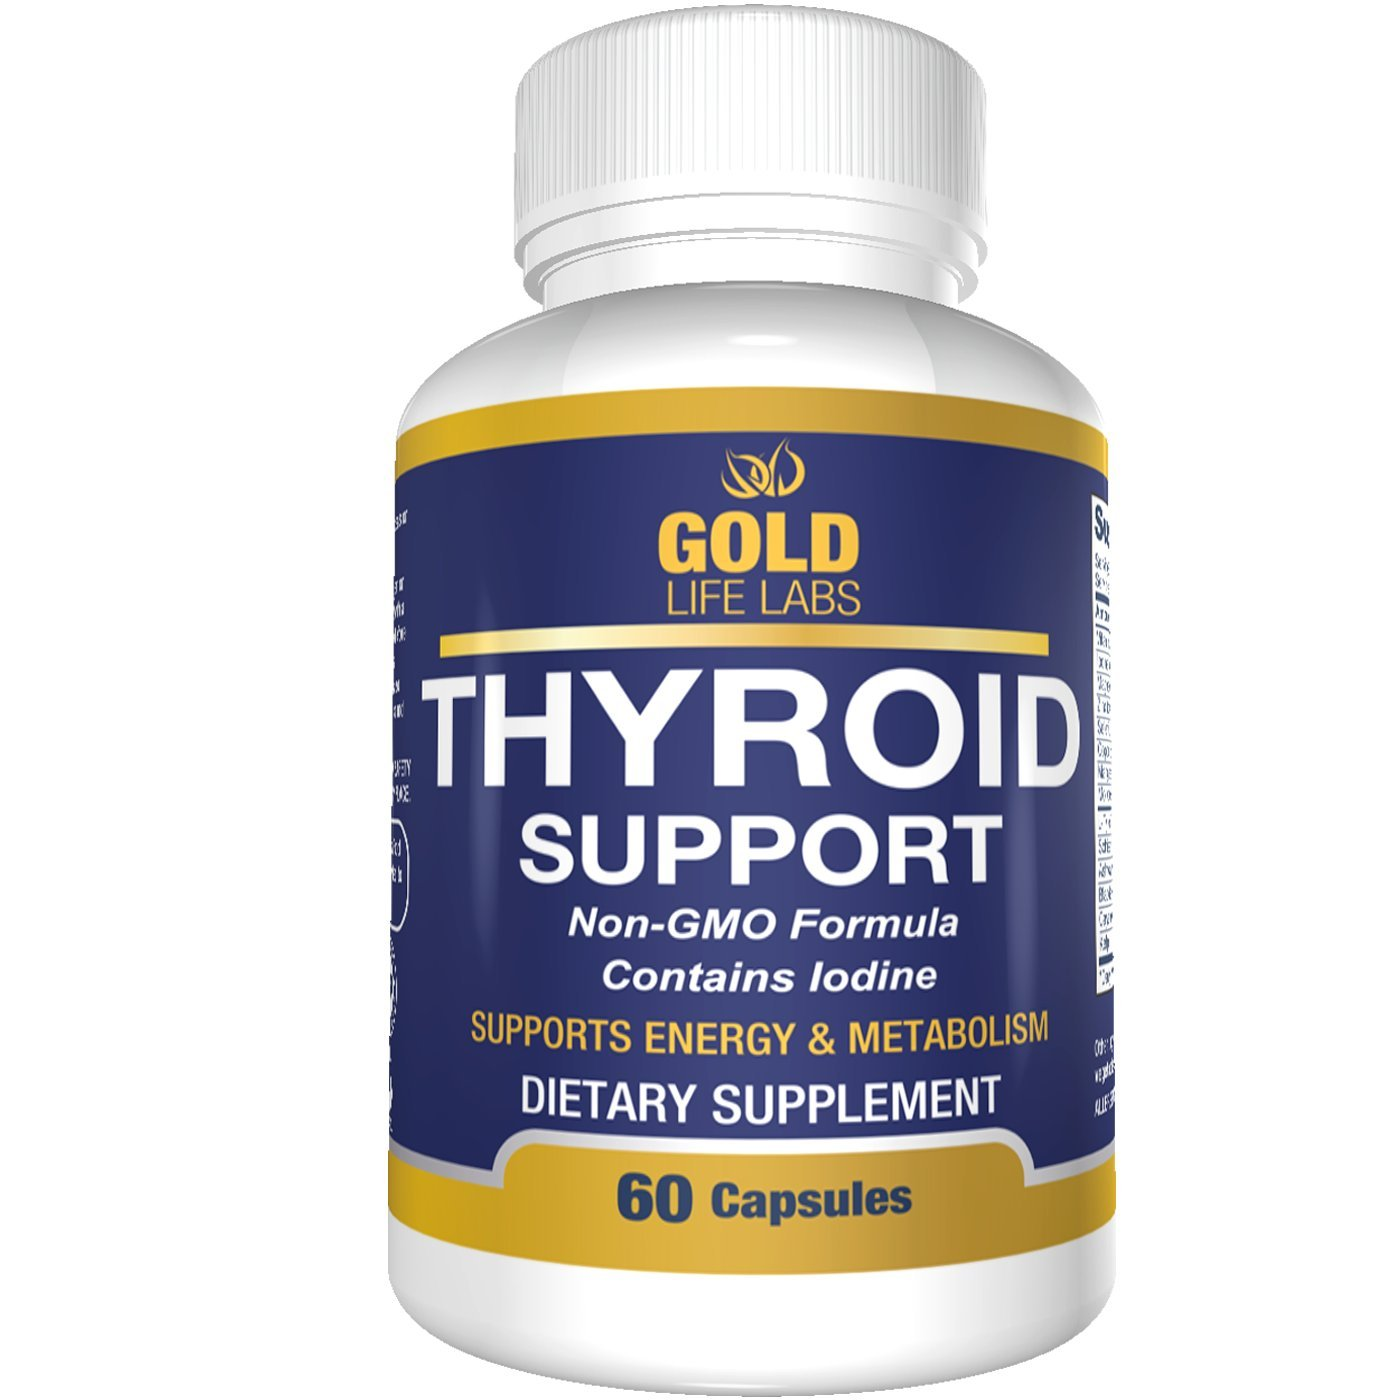 Thyroid Support Supplement with Iodine - May Support Weight Loss - 60 Capsules - Promotes Healthy Metabolism, Mental Clarity, & Focus - Thyroid Supplement Supports Natural Energy Levels